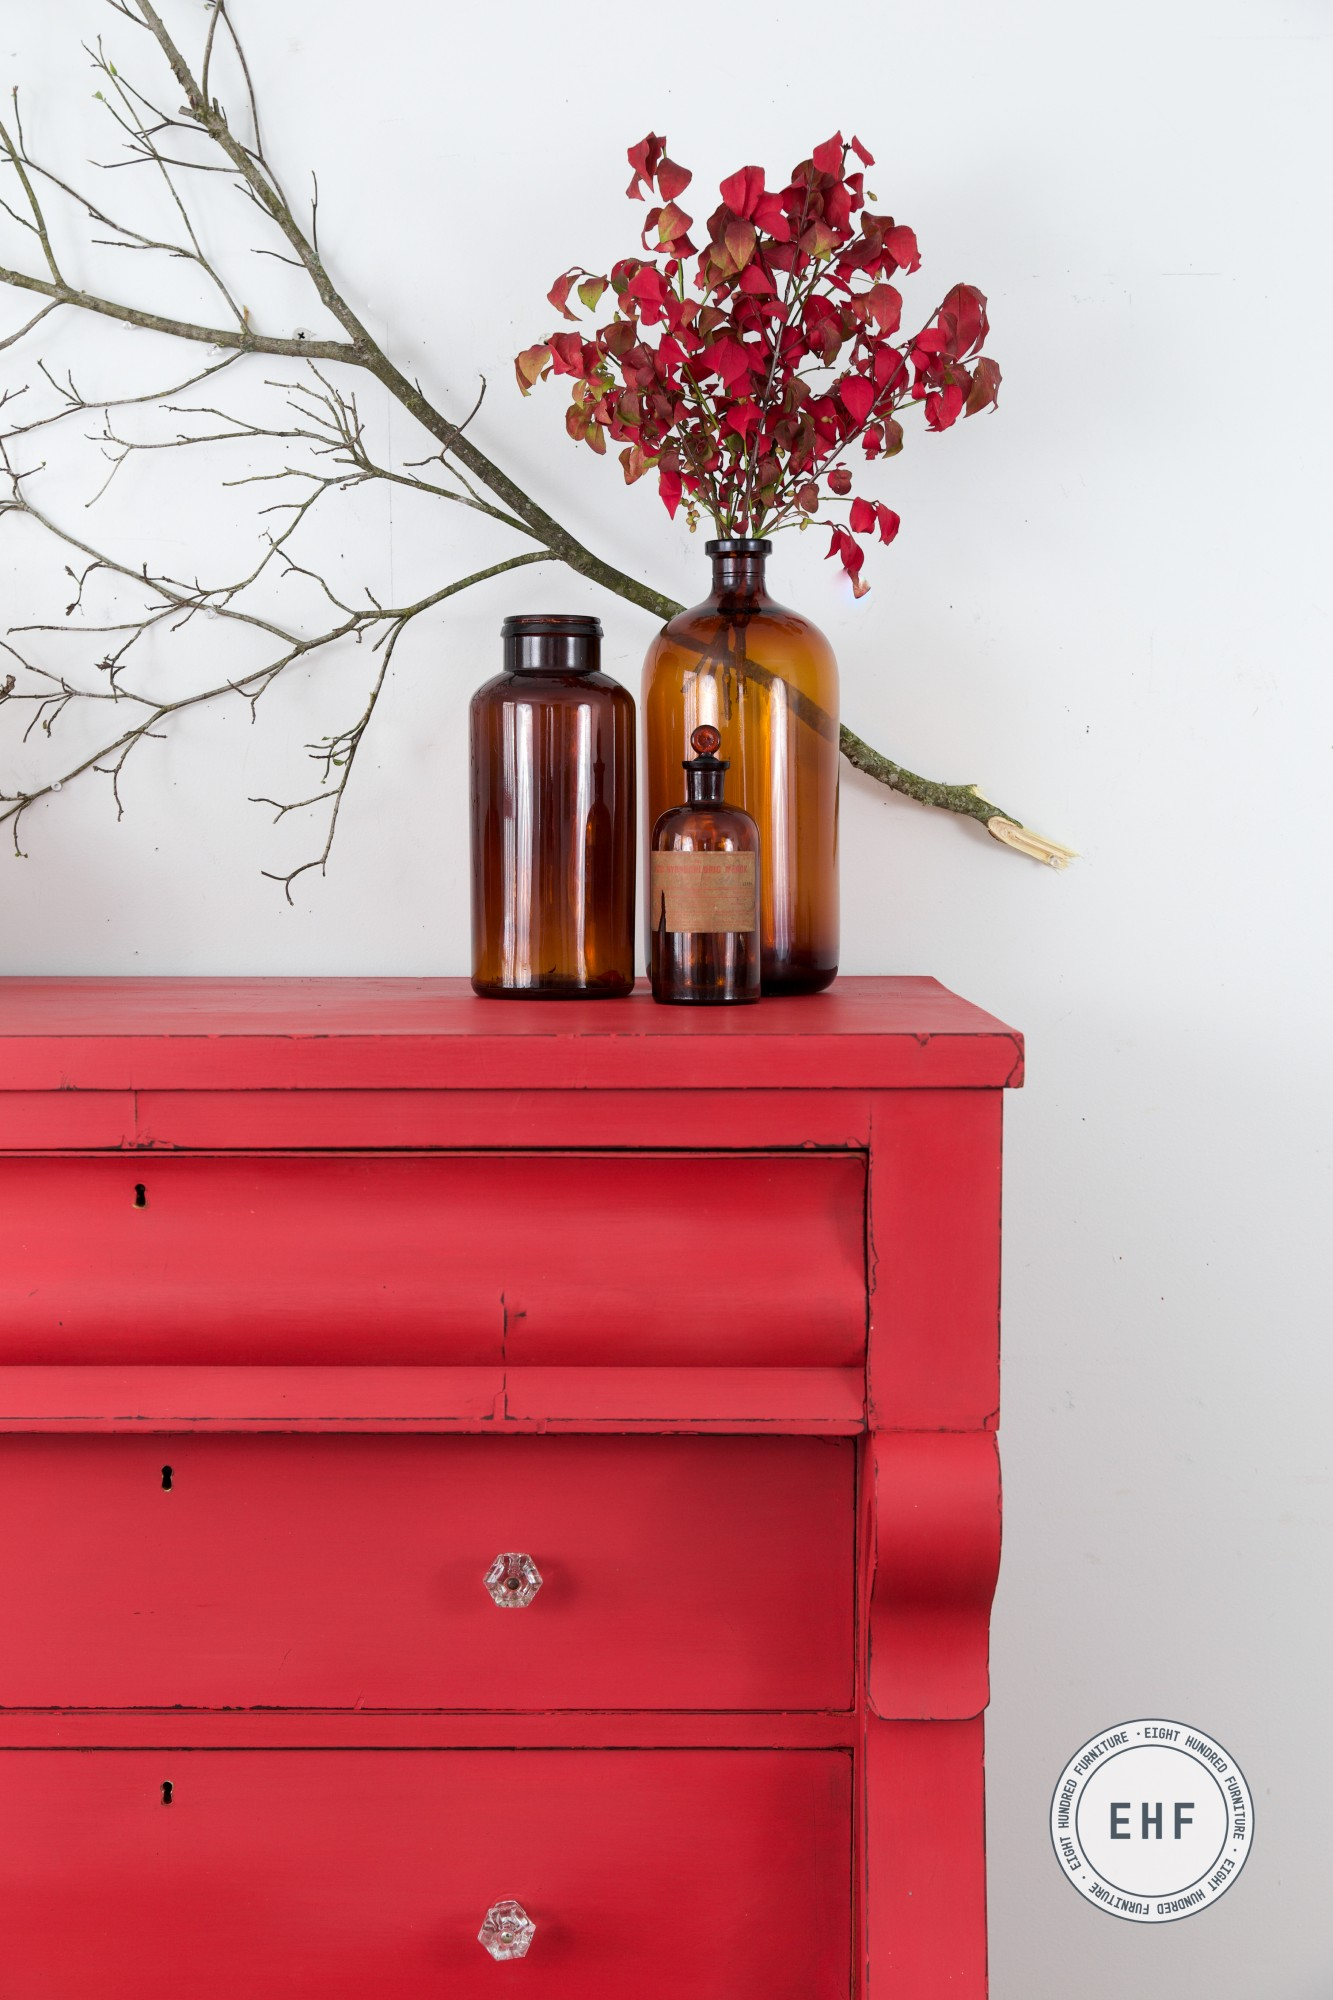 Amber bottles and fall decor on empire dresser in Miss Mustard Seed's Milk Paint by Eight Hundred Furniture